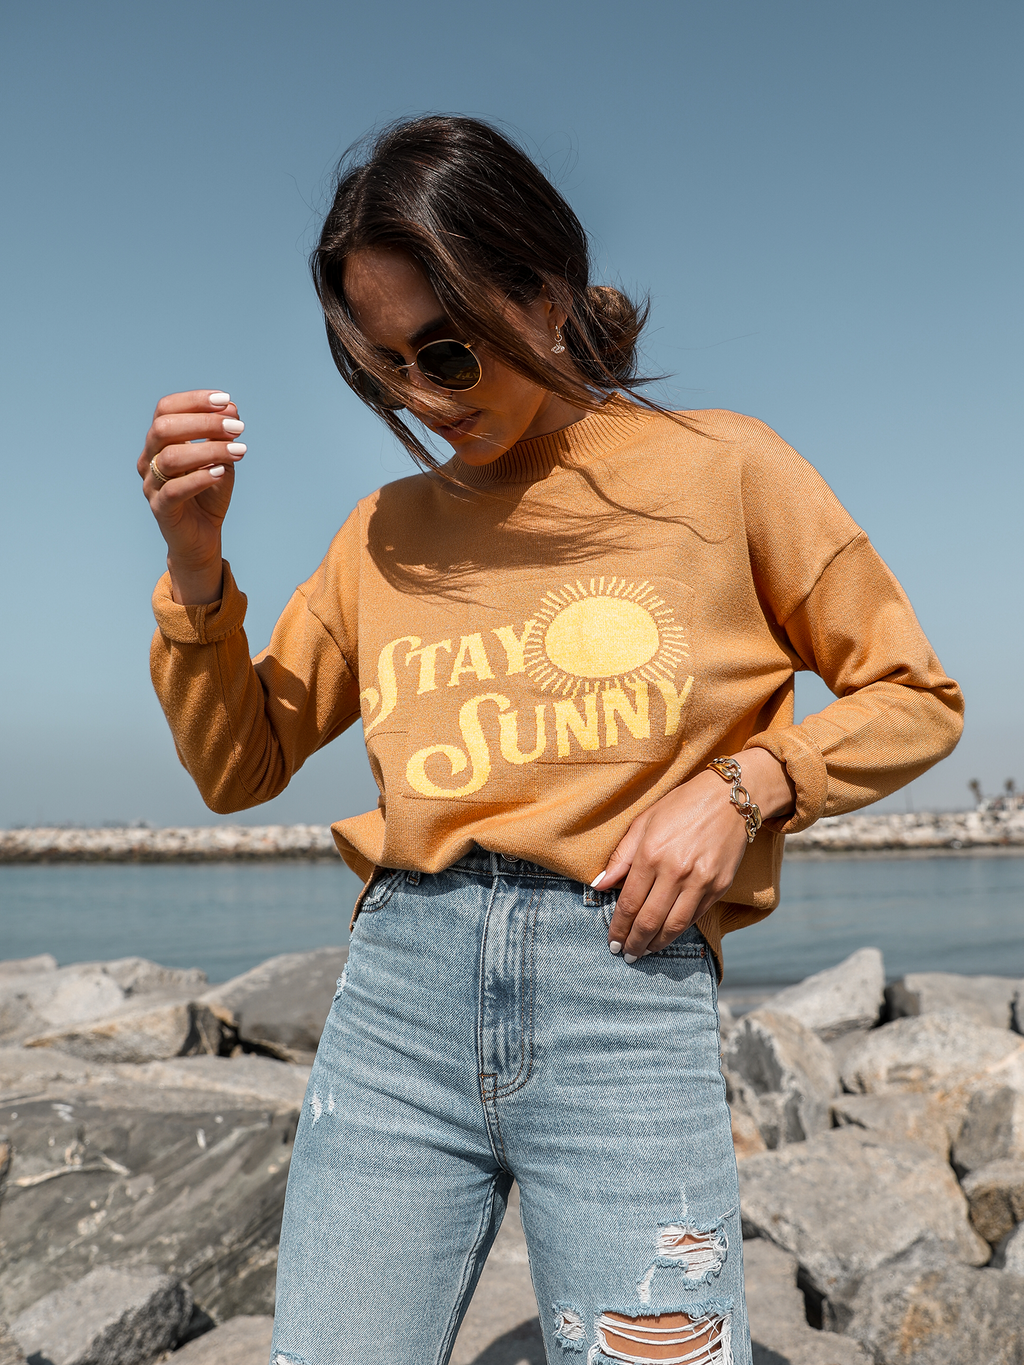 Stay Sunny Sweater - Stitch And Feather